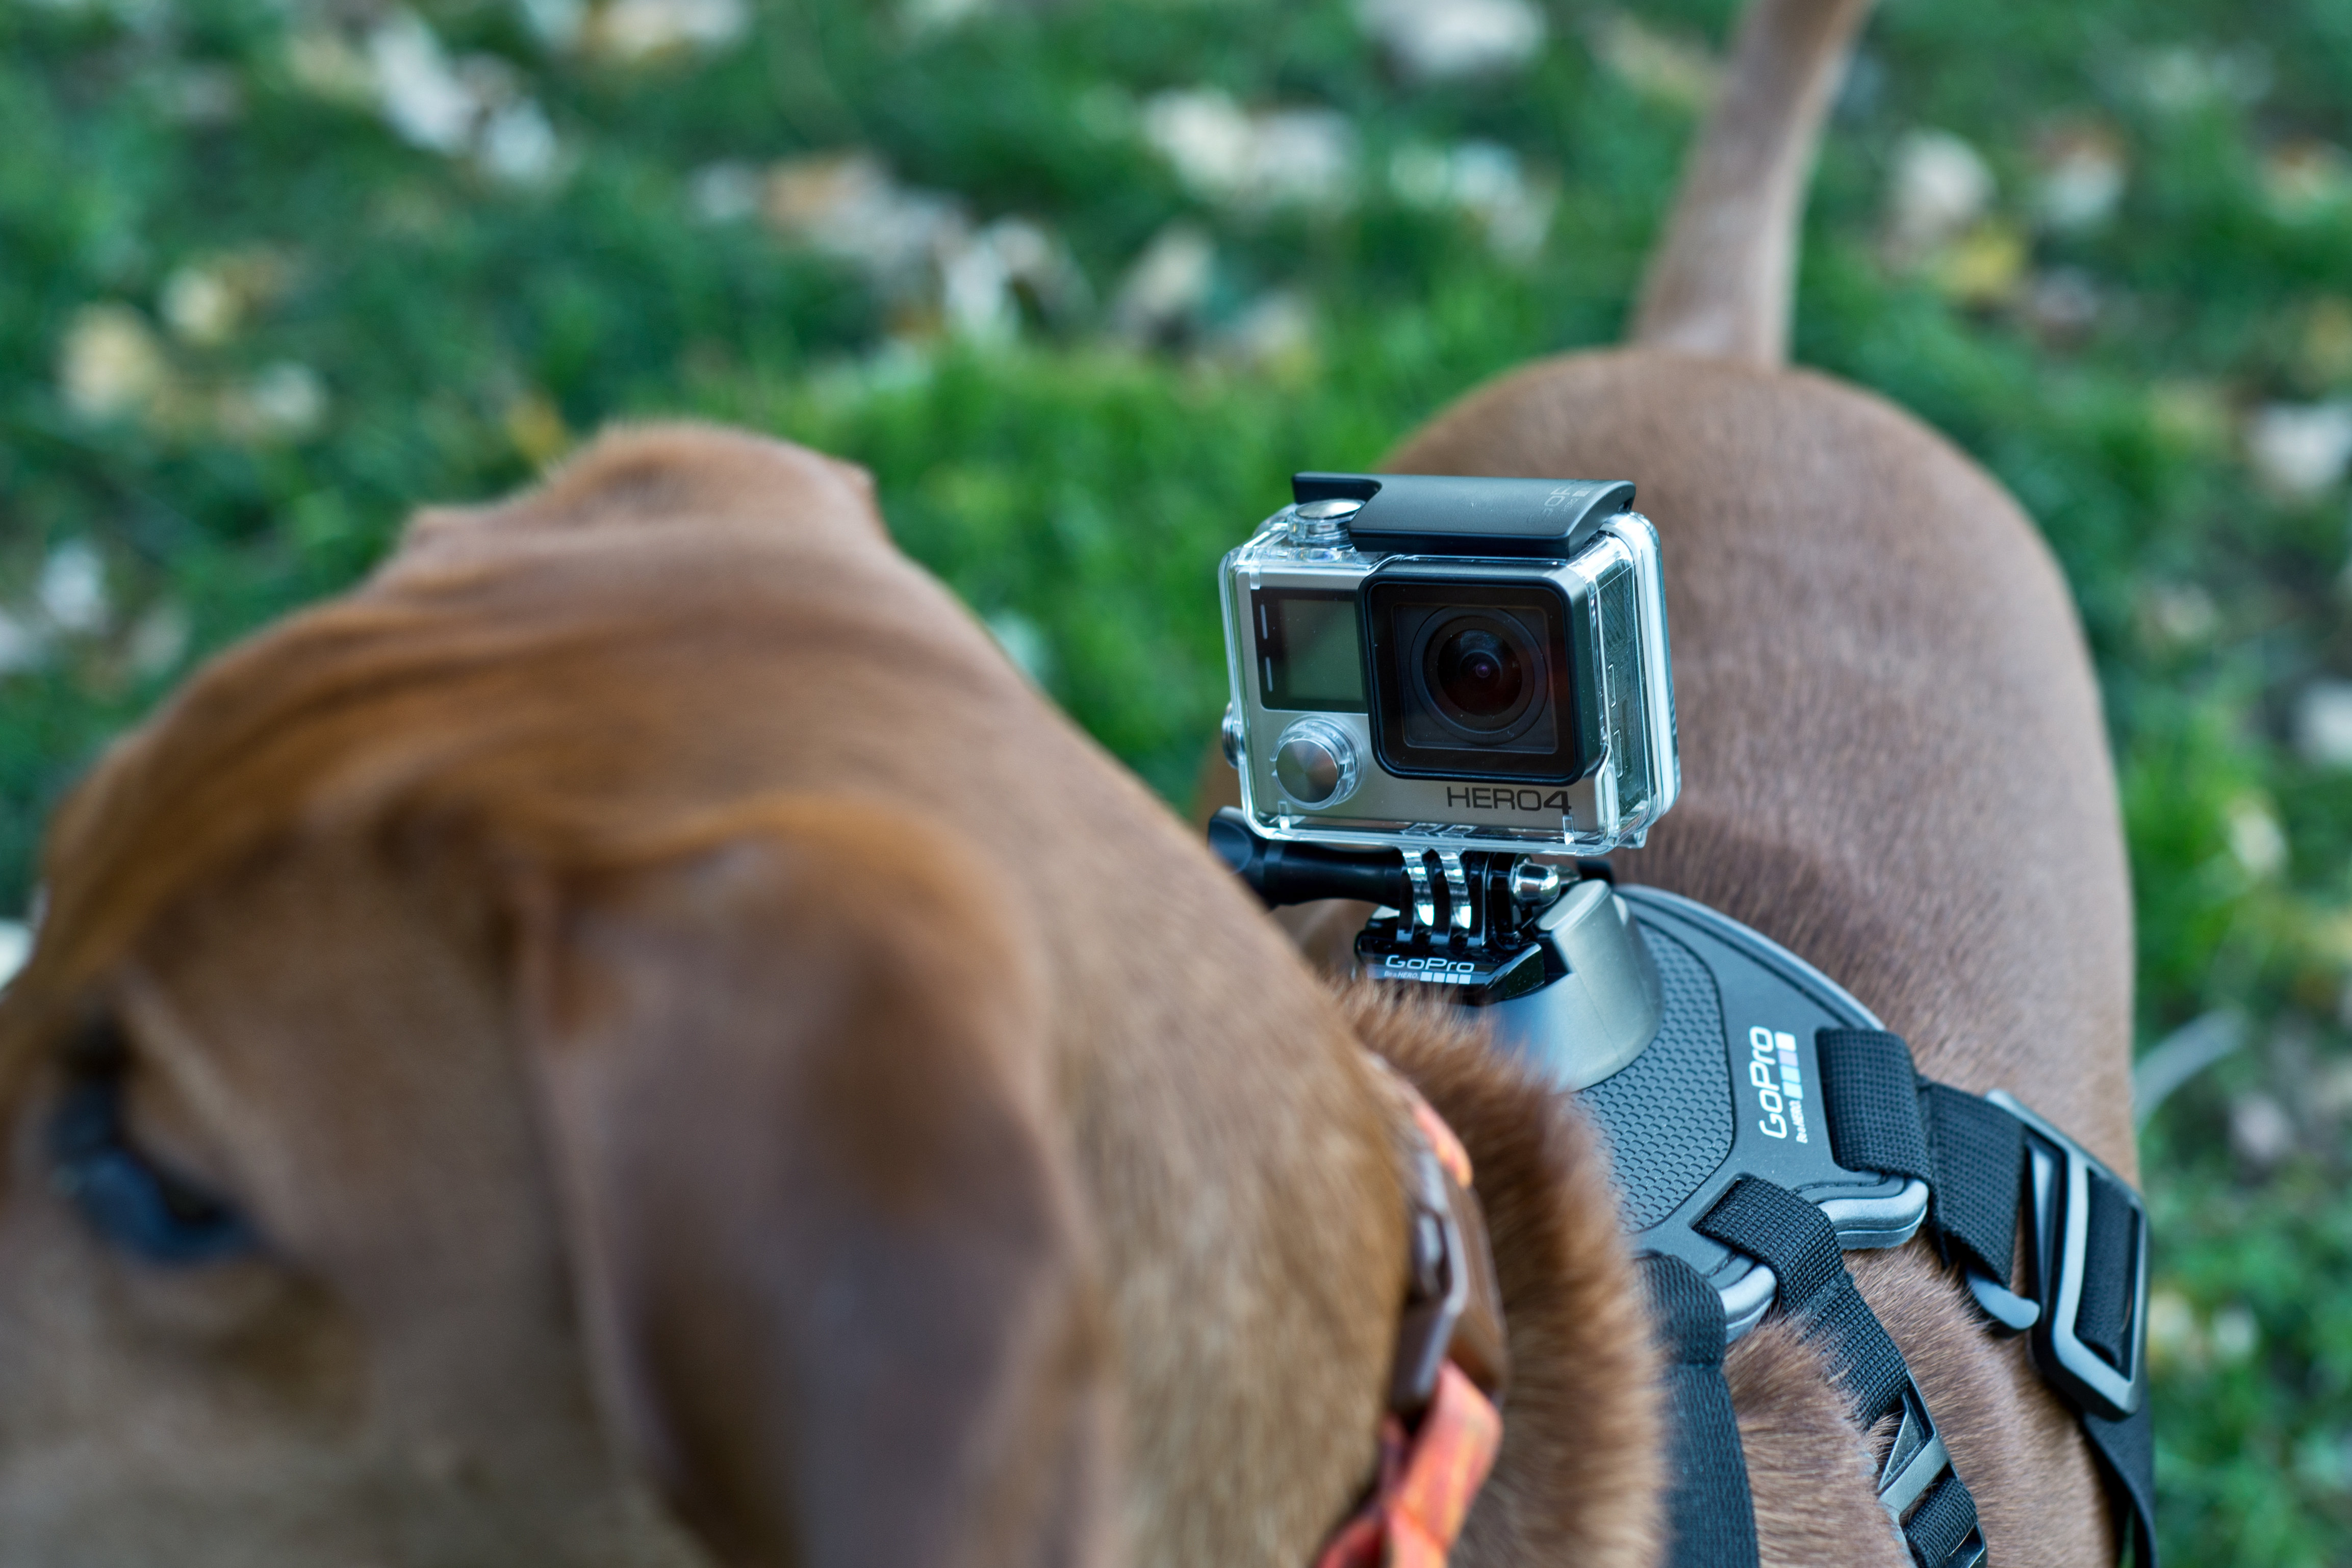 A photograph of the GoPro Hero 4 Silver mounted on a dog.